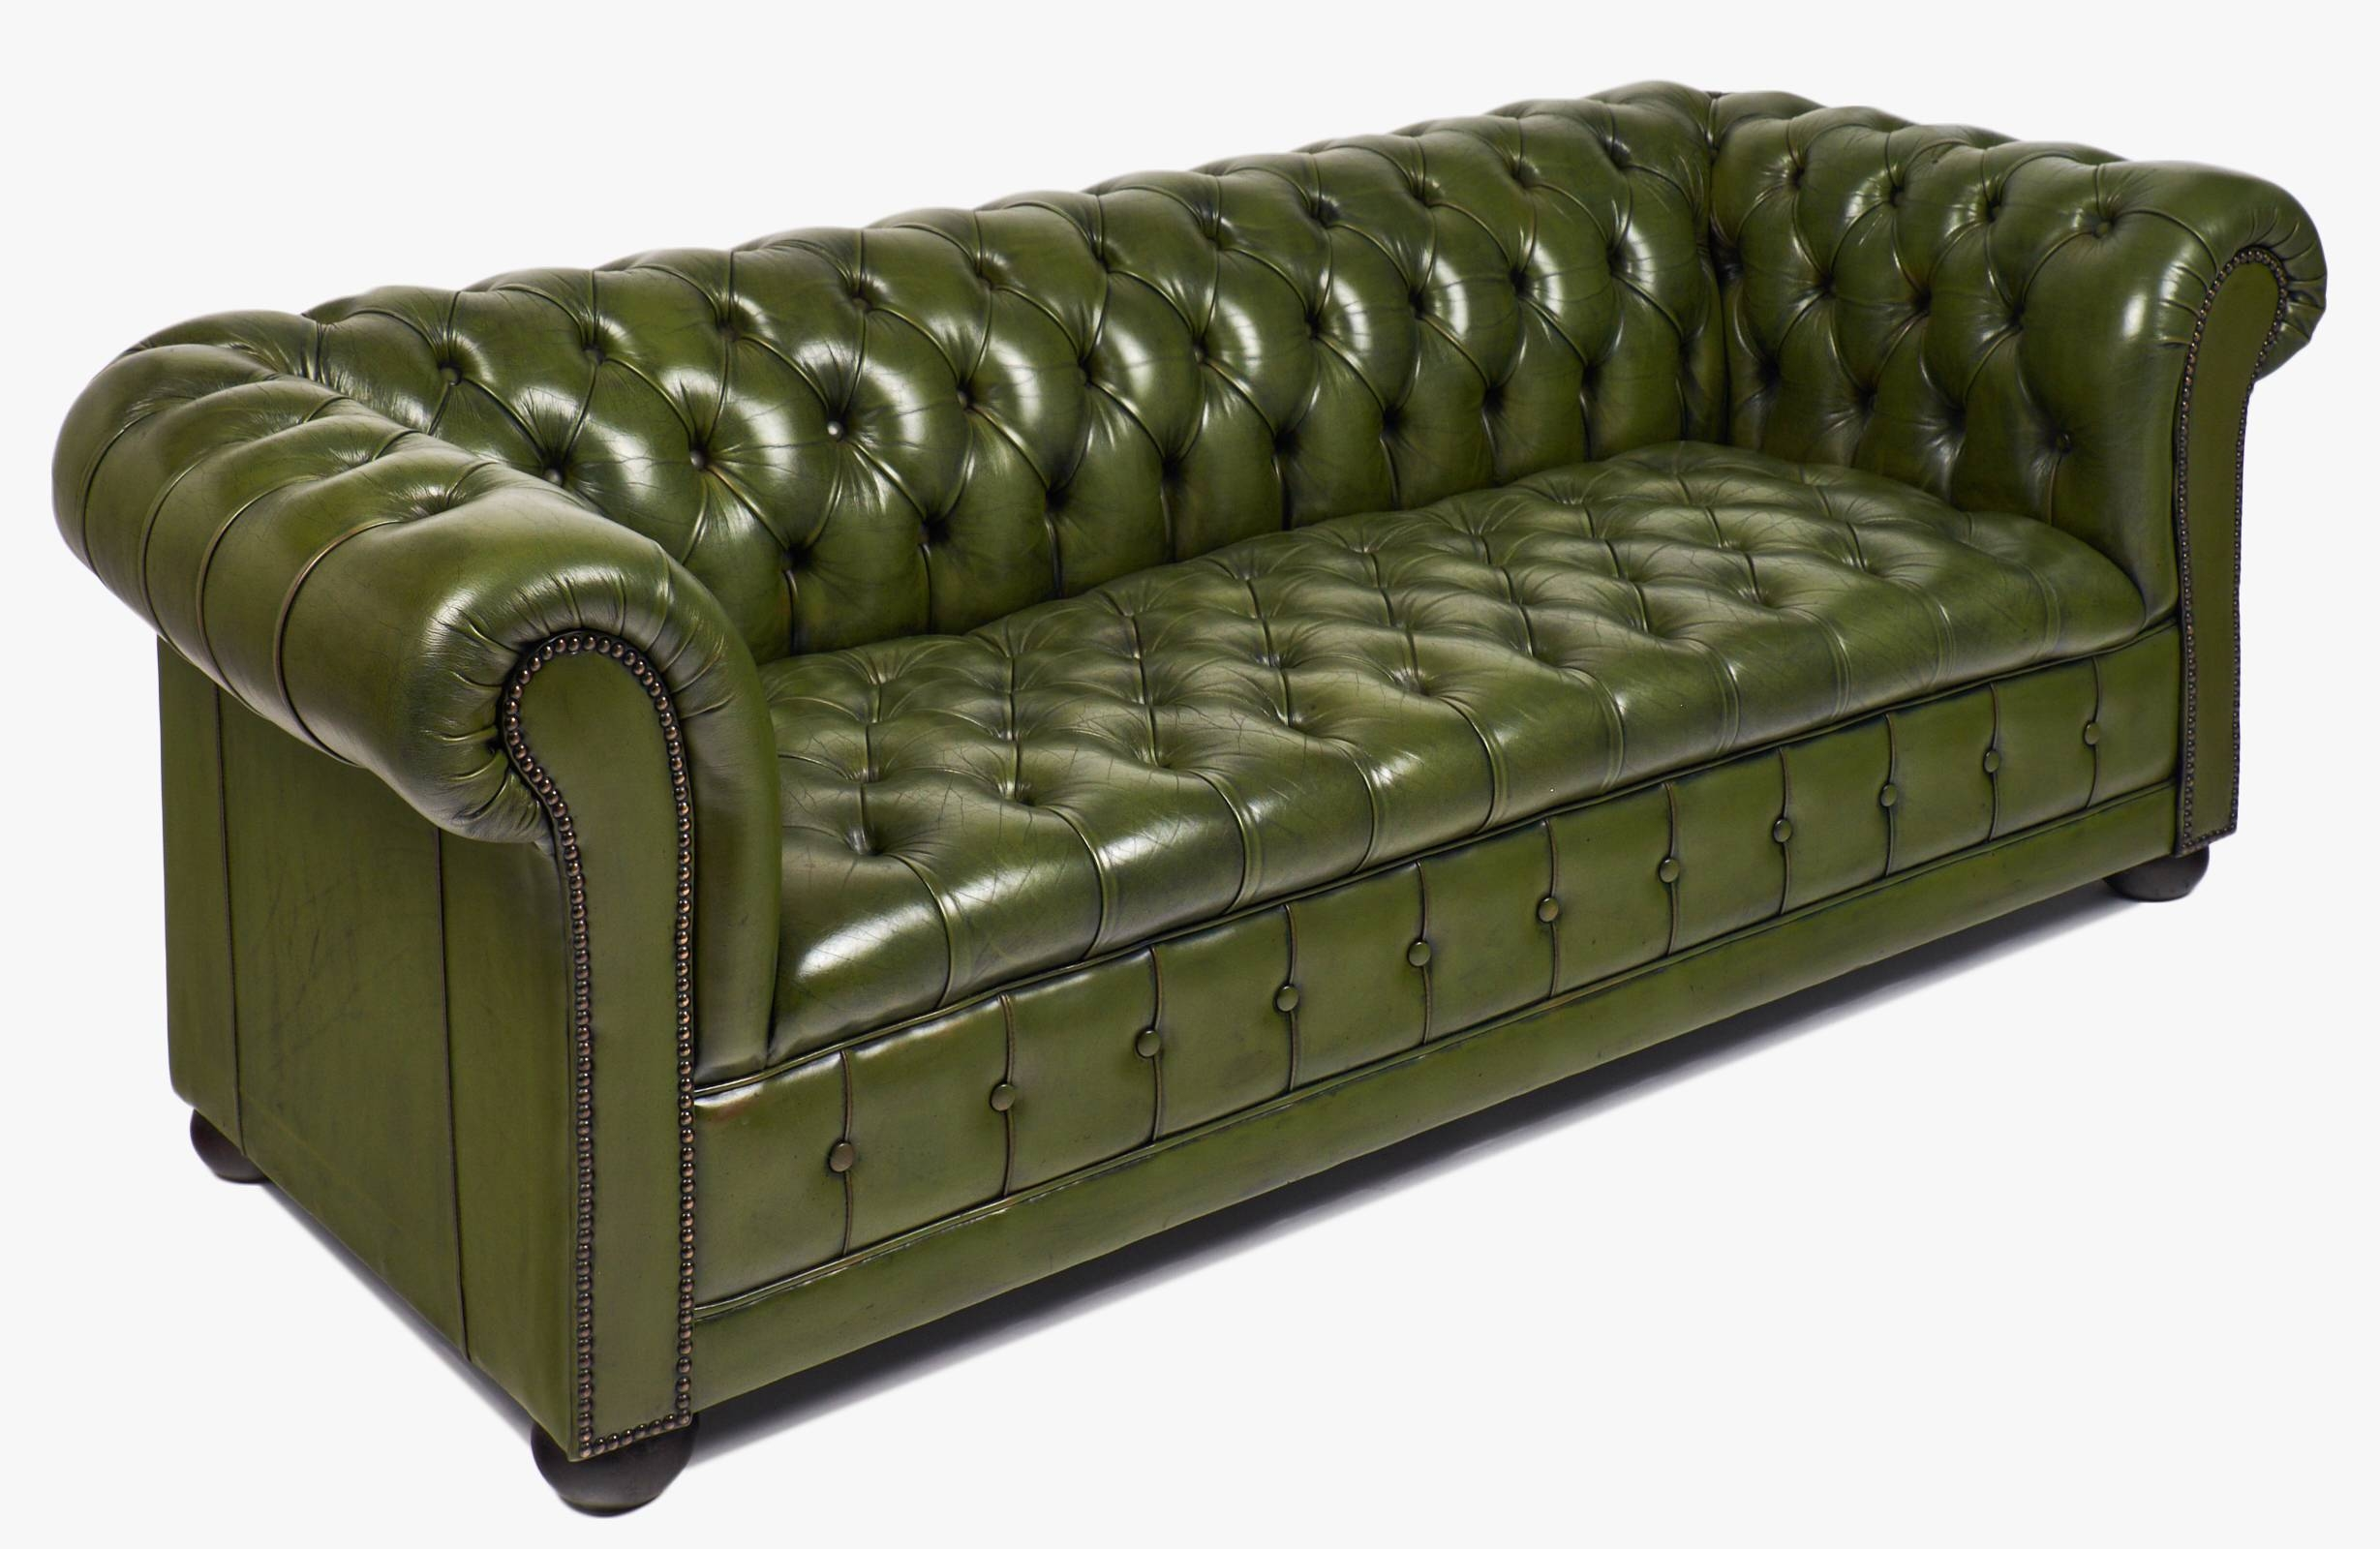 Vintage Green Leather Chesterfield Sofa - Jean Marc Fray intended for Vintage Chesterfield Sofas (Image 26 of 30)